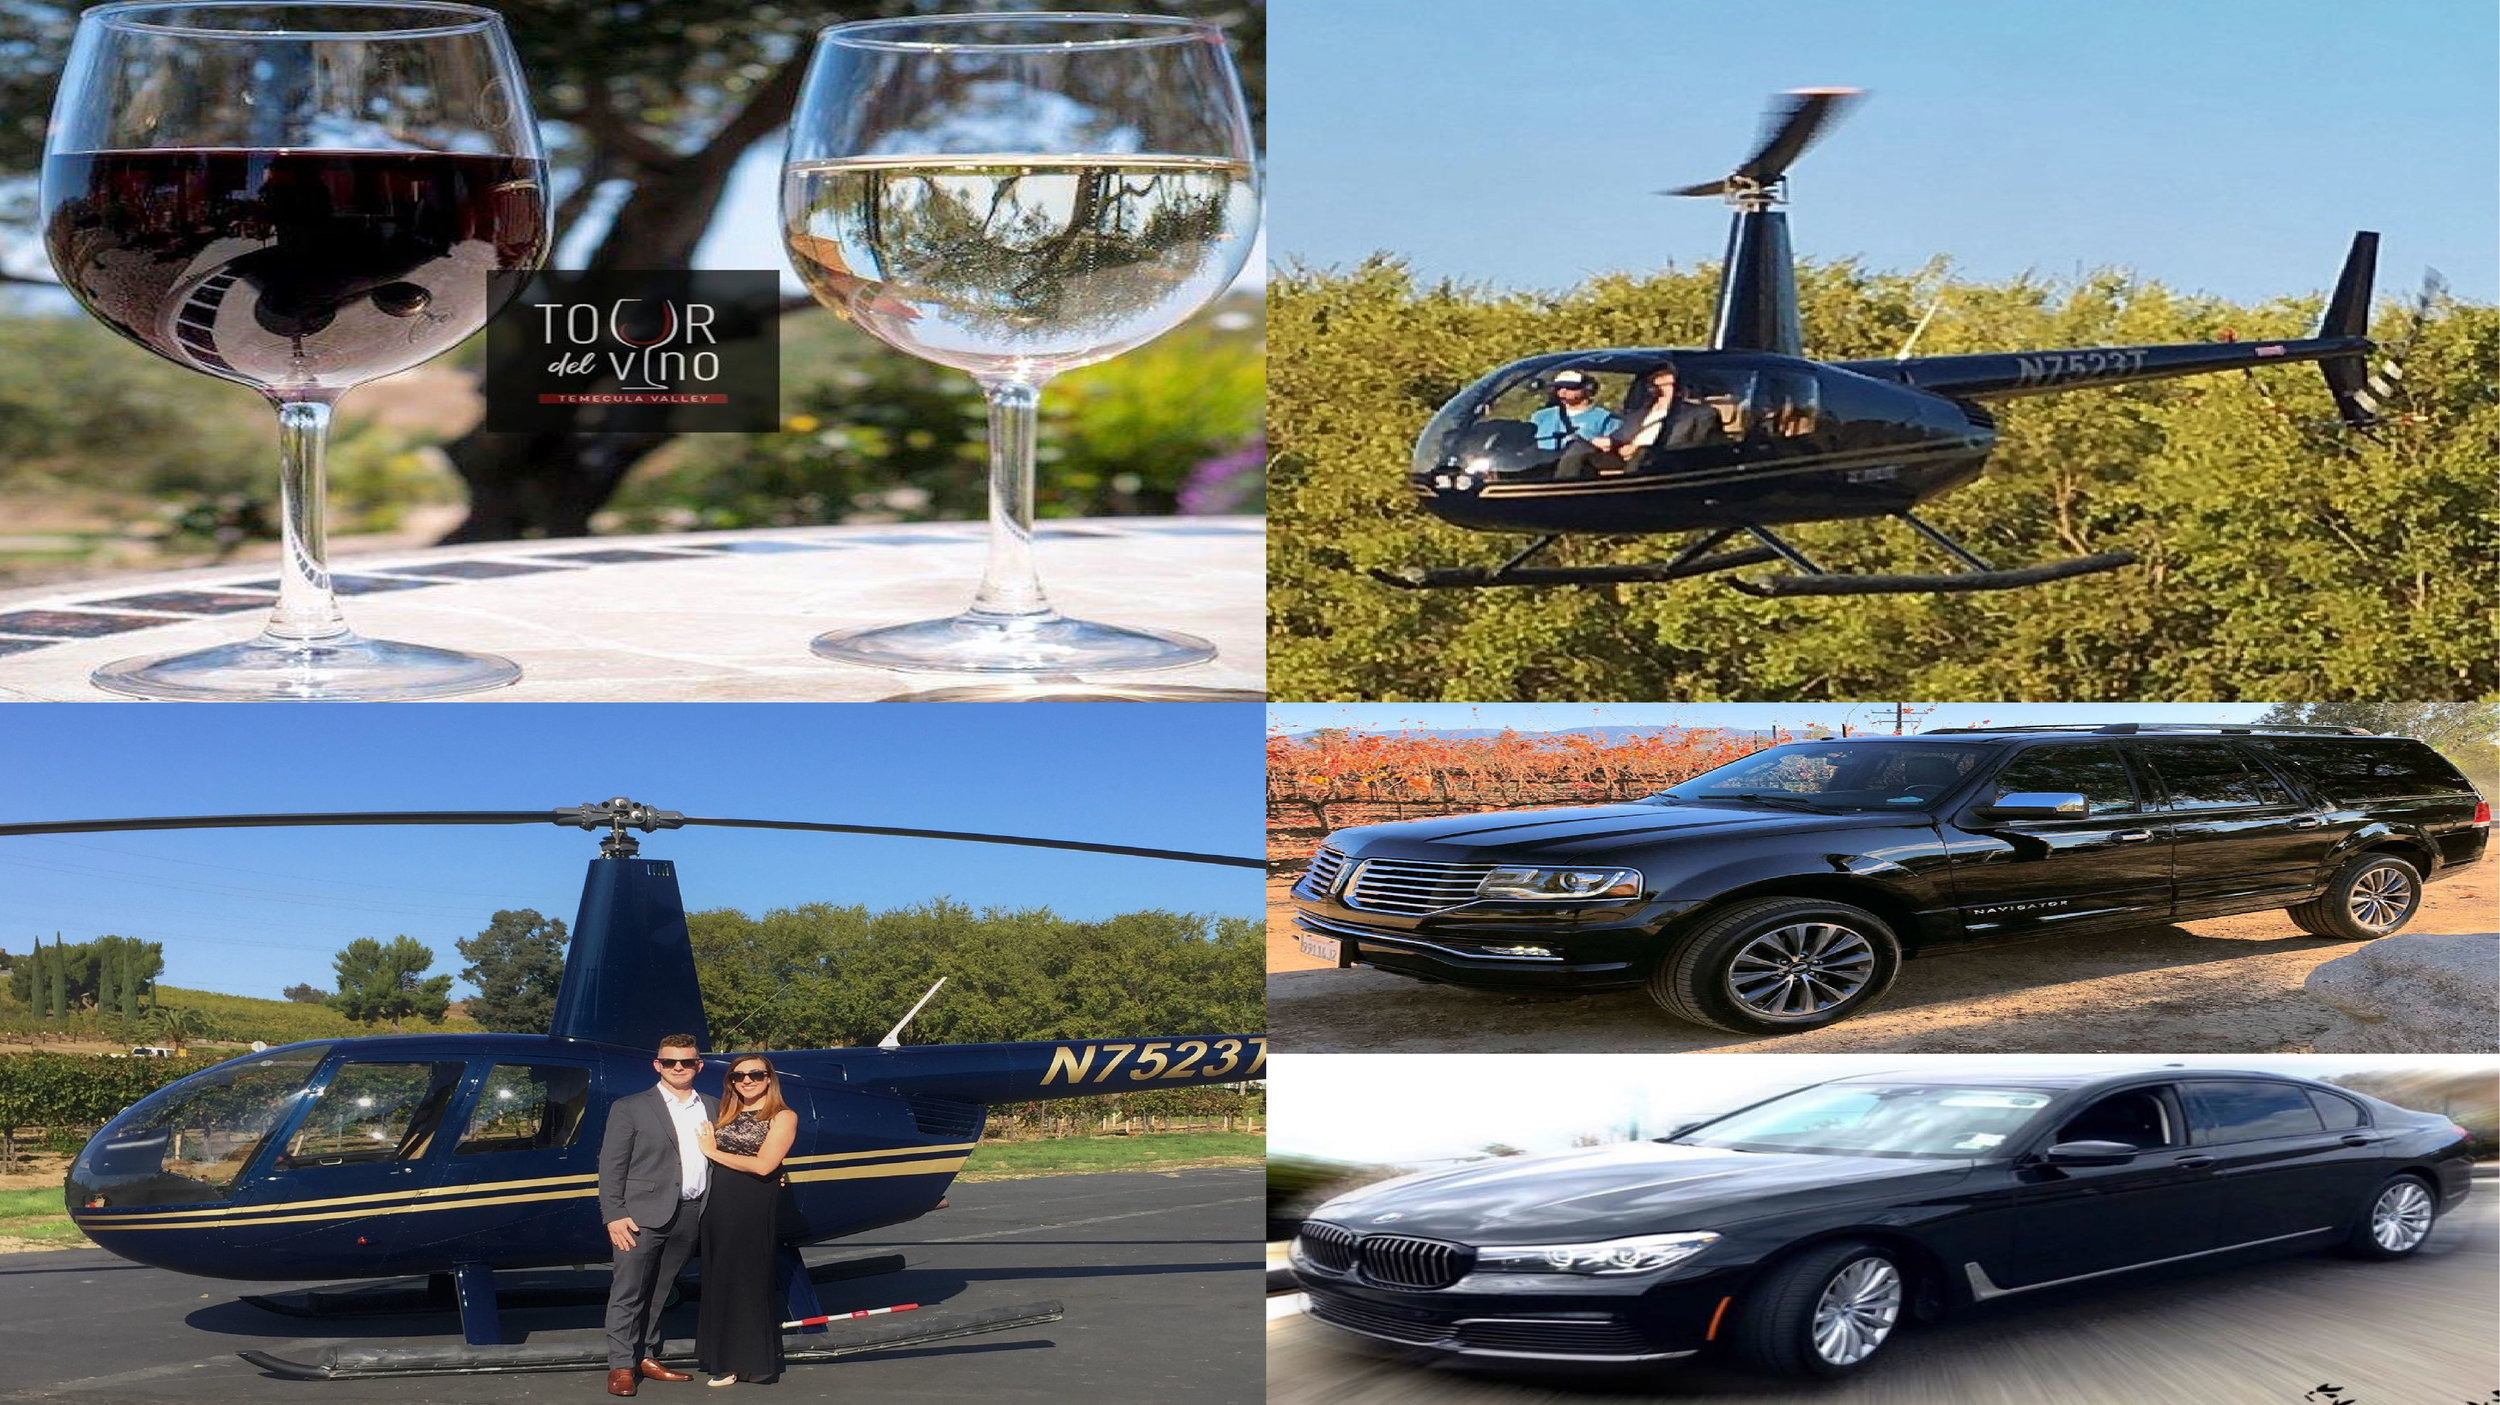 Temecula Wineries - Helicopter Charter and Luxury Transportation